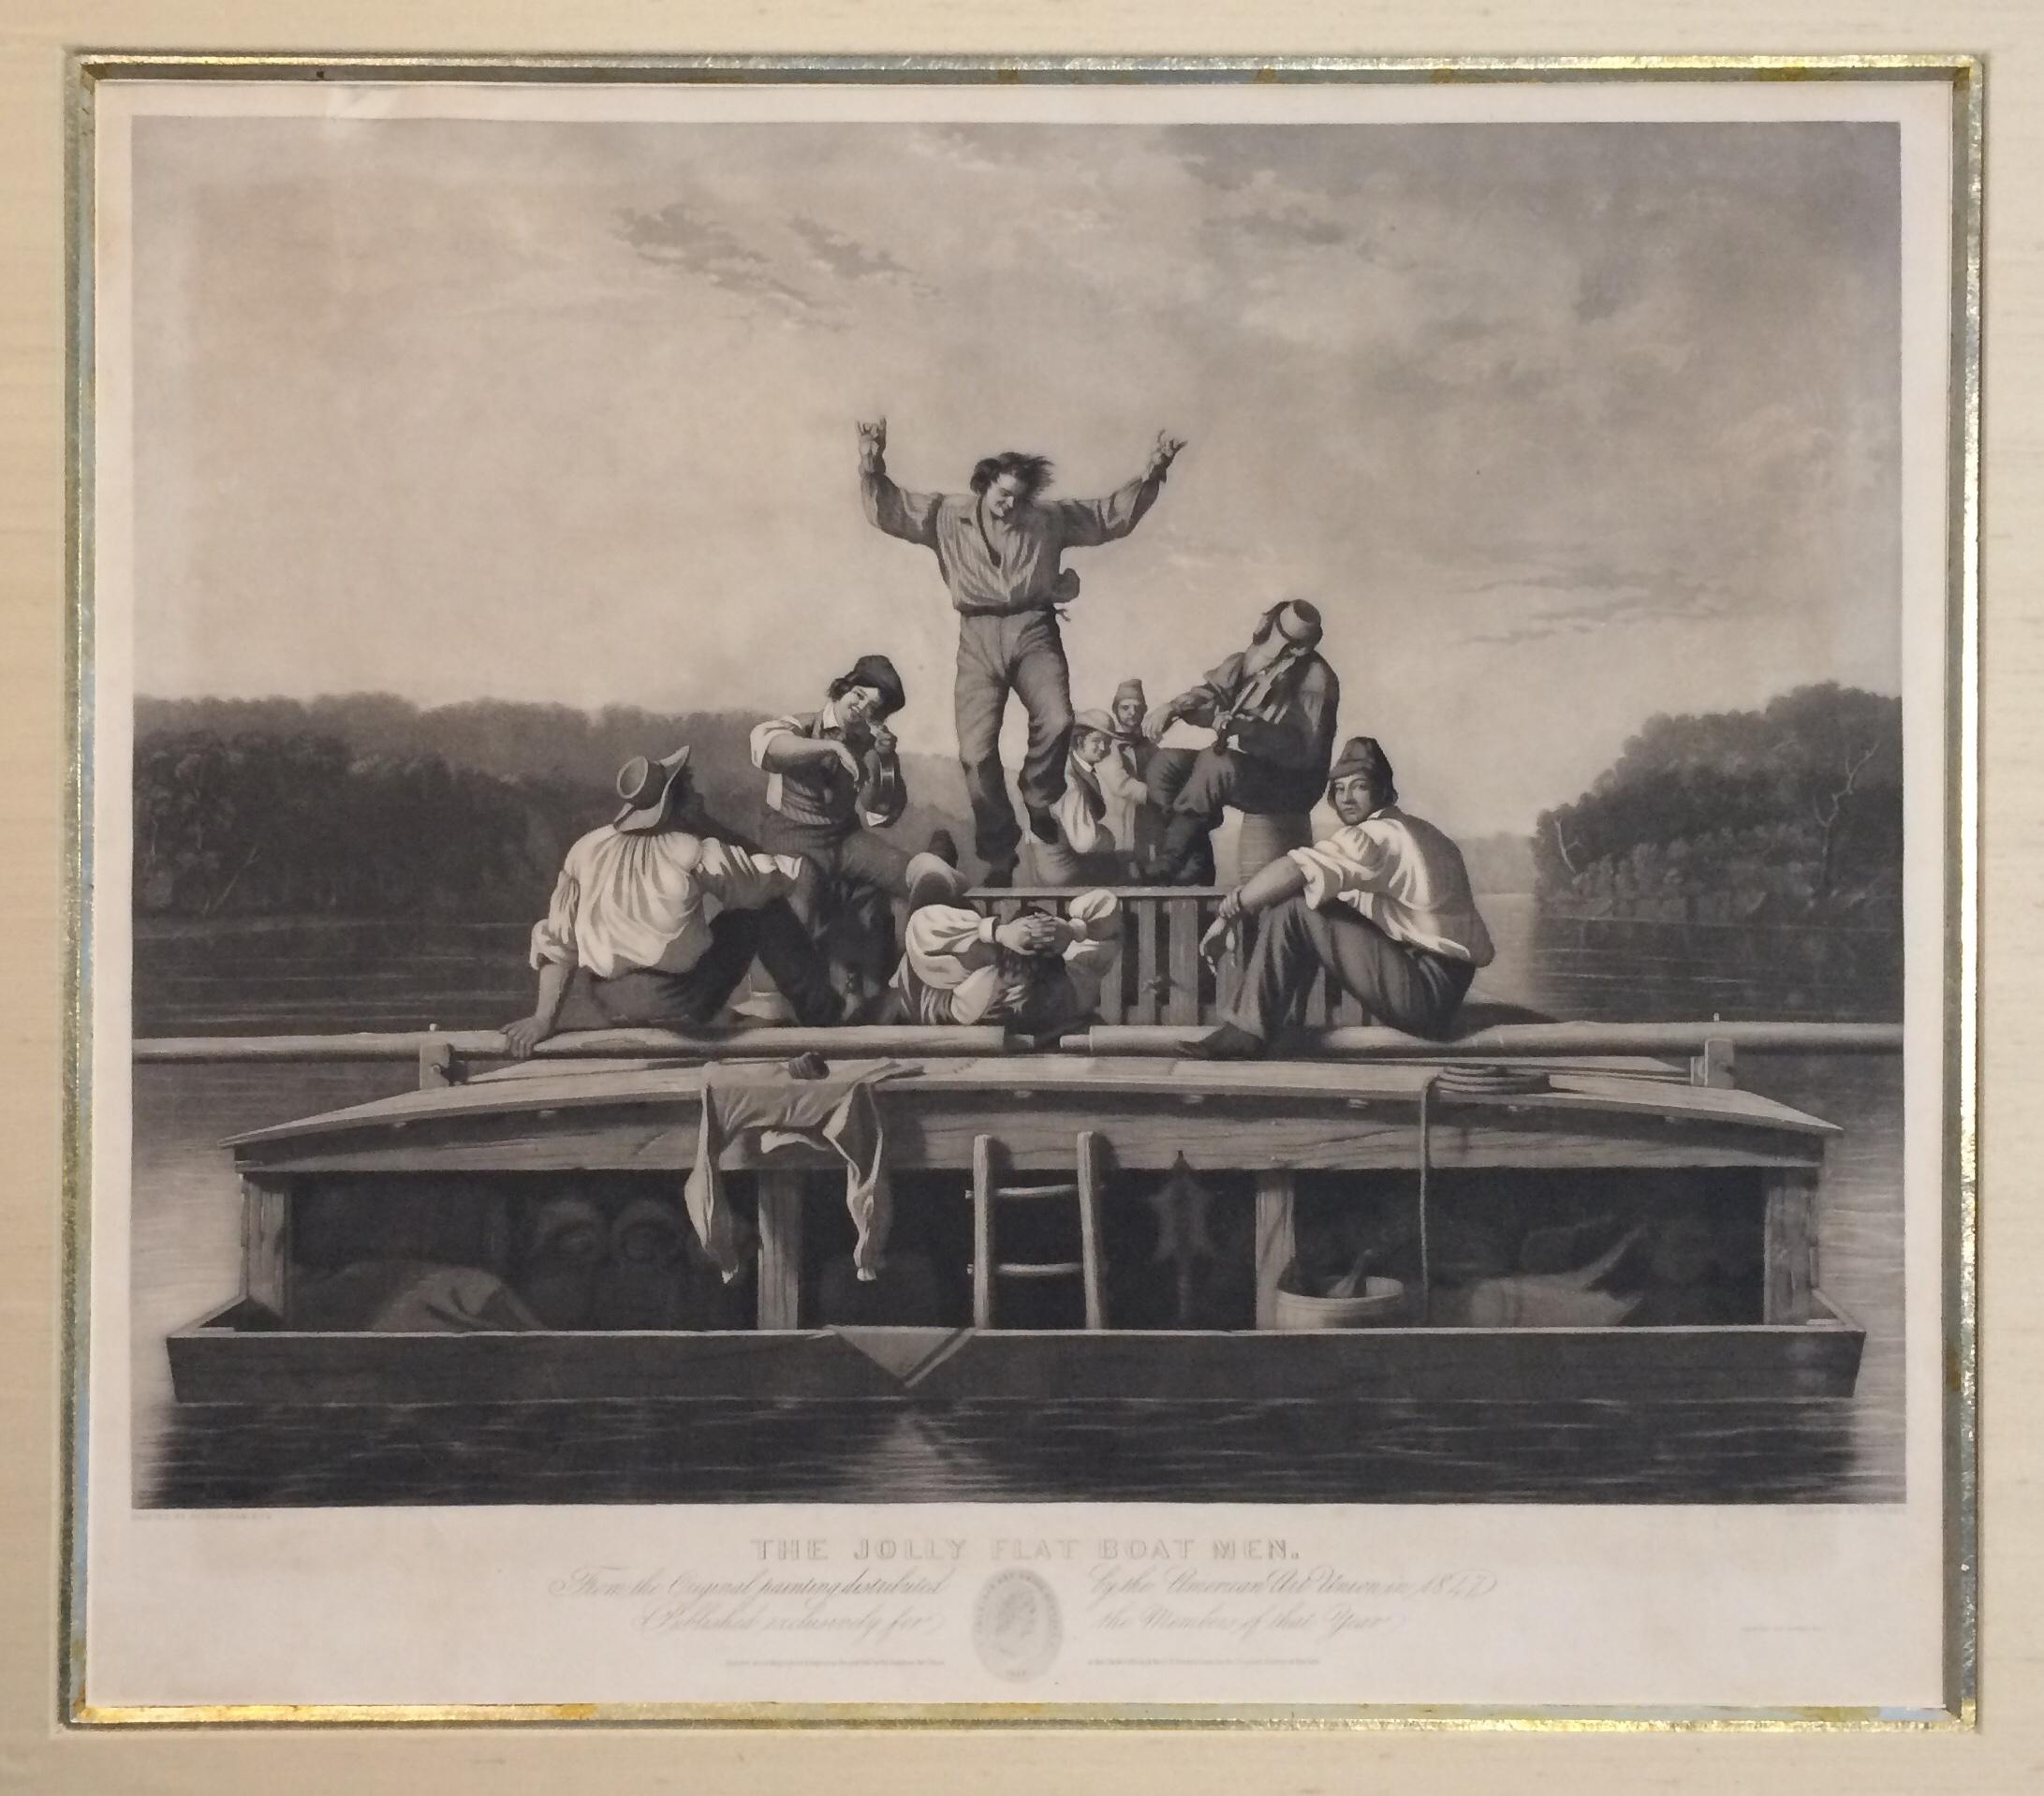 """""""The Jolly Flatboatmen,"""" Mississippi River Frontier Old West, Louisiana Purchase"""